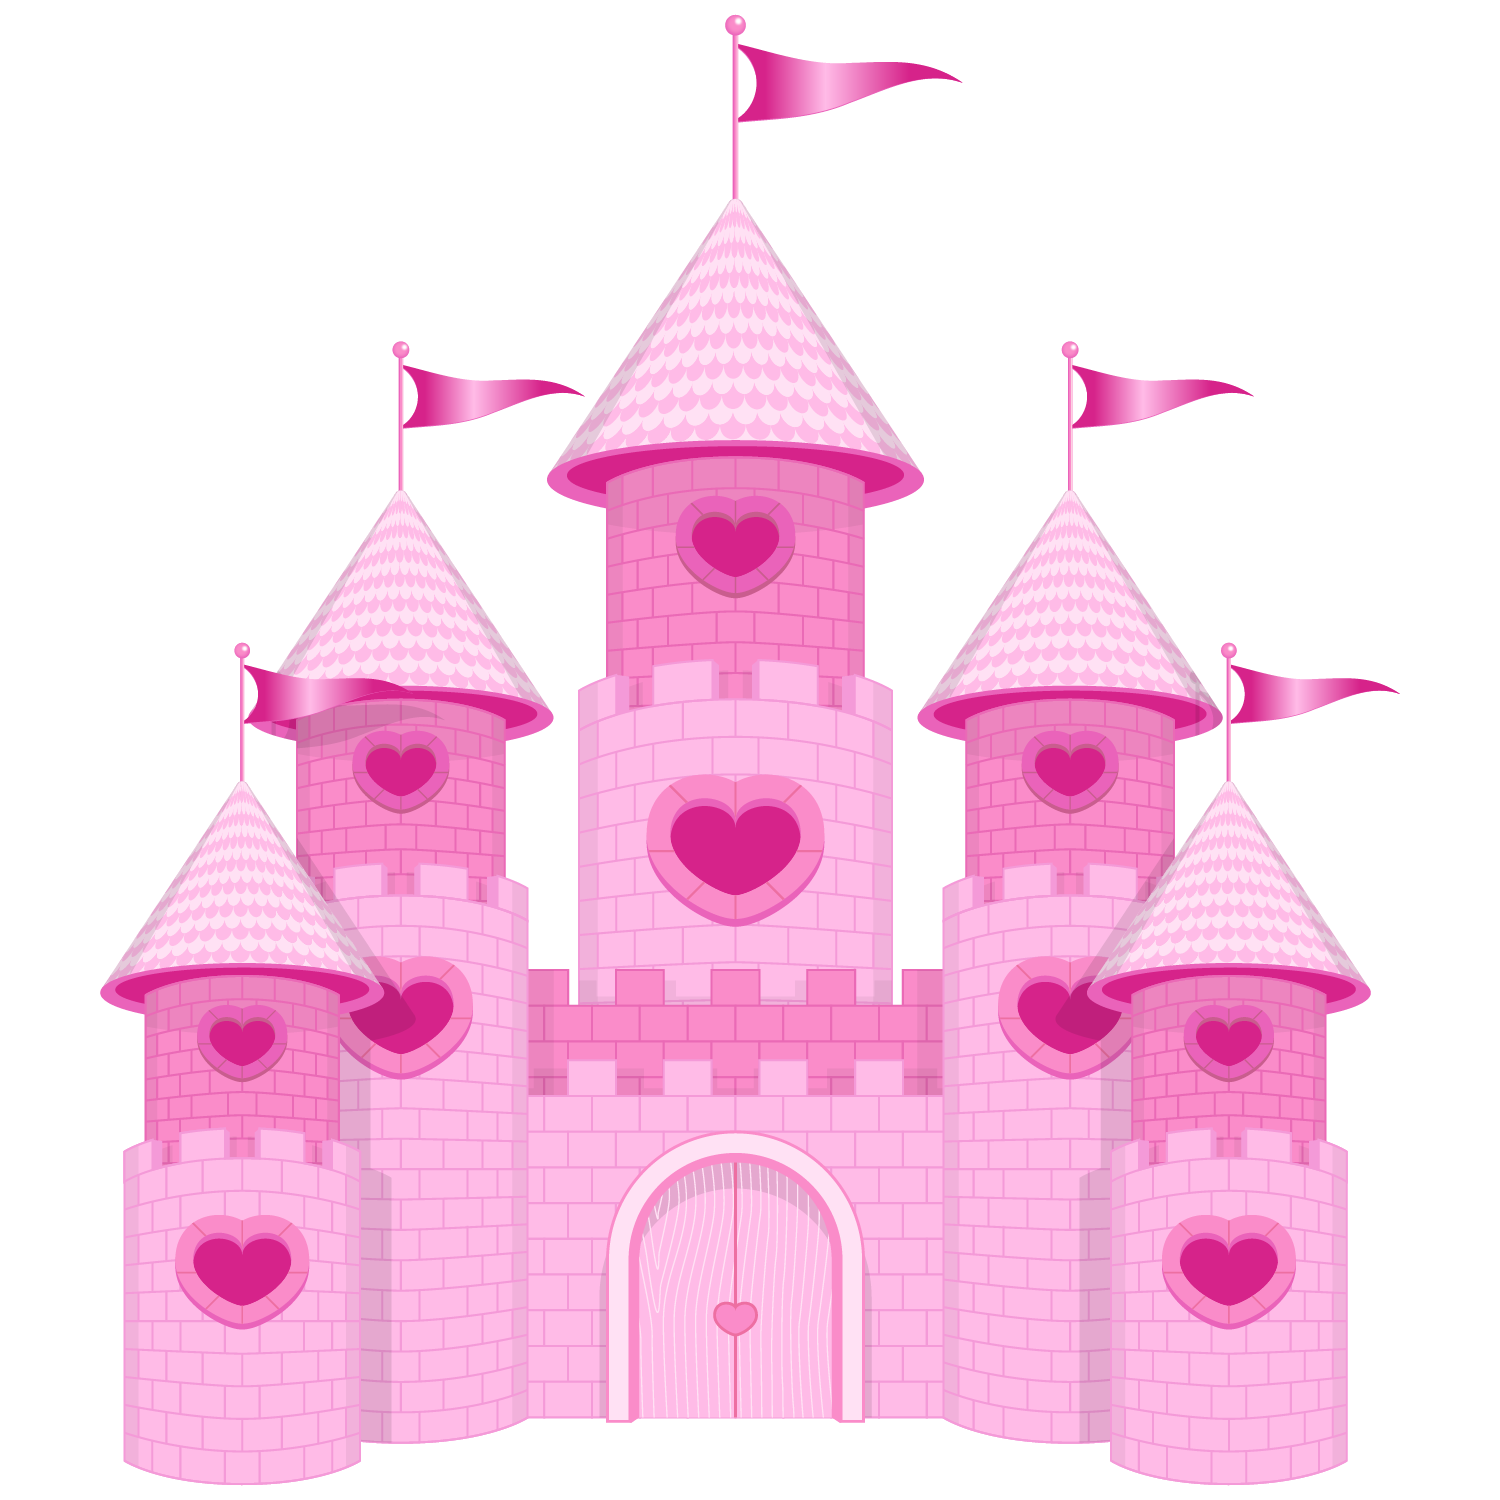 princesas e pr u00edncipes ca62 03 png minus birthday for princess castle clipart black and white pink princess castle clipart